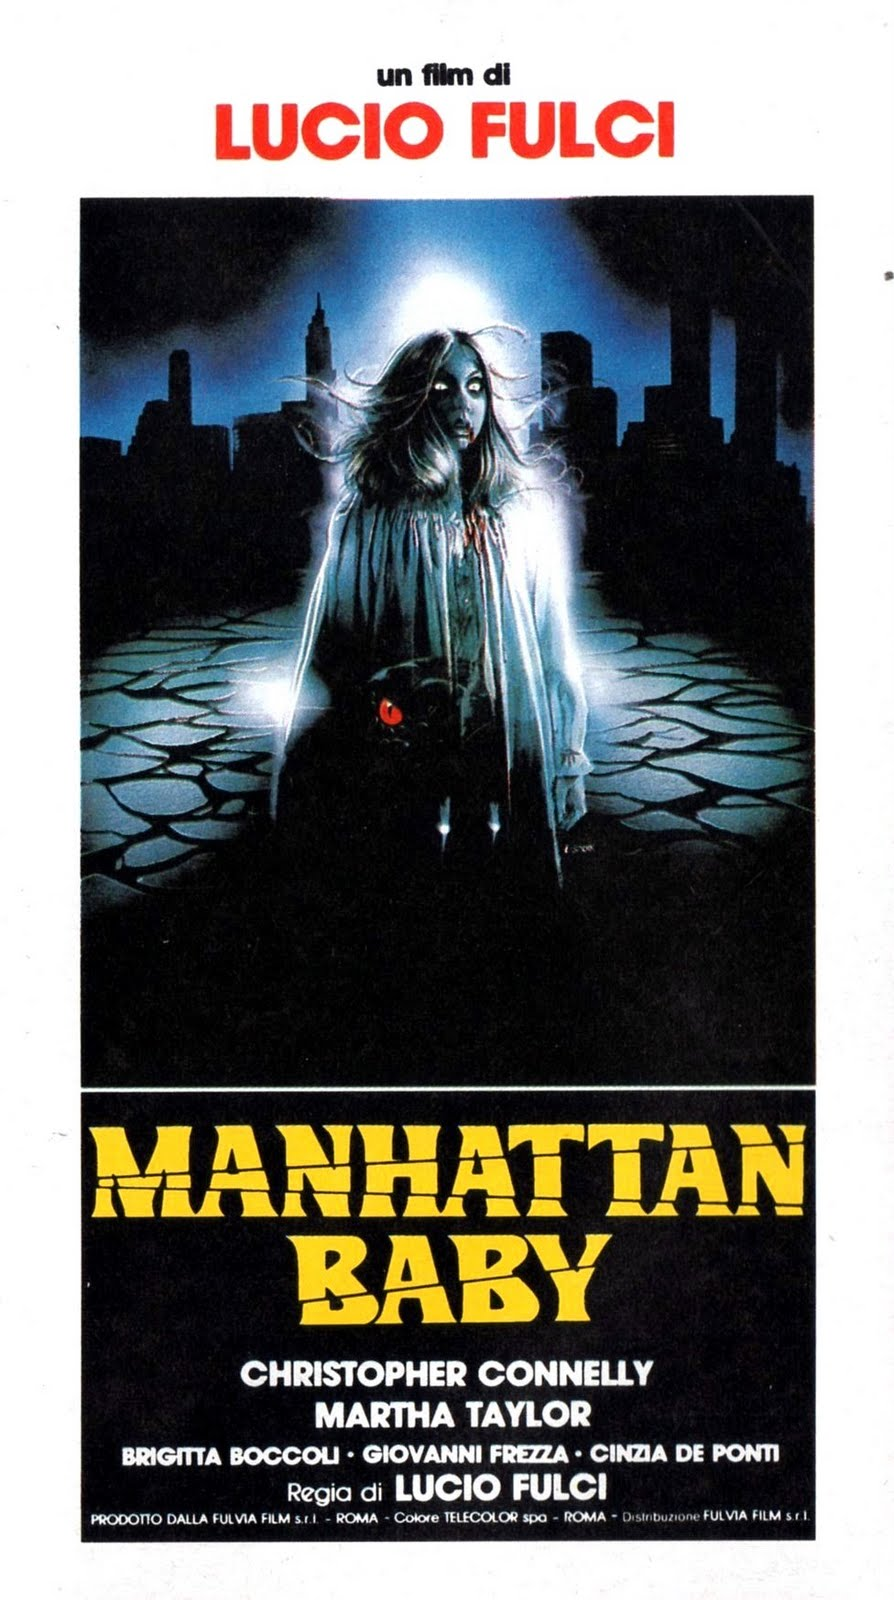 https://images.duckduckgo.com/iu/?u=https%3A%2F%2F101horrormovies.files.wordpress.com%2F2014%2F06%2Fmanhattan-baby-poster.jpg&f=1